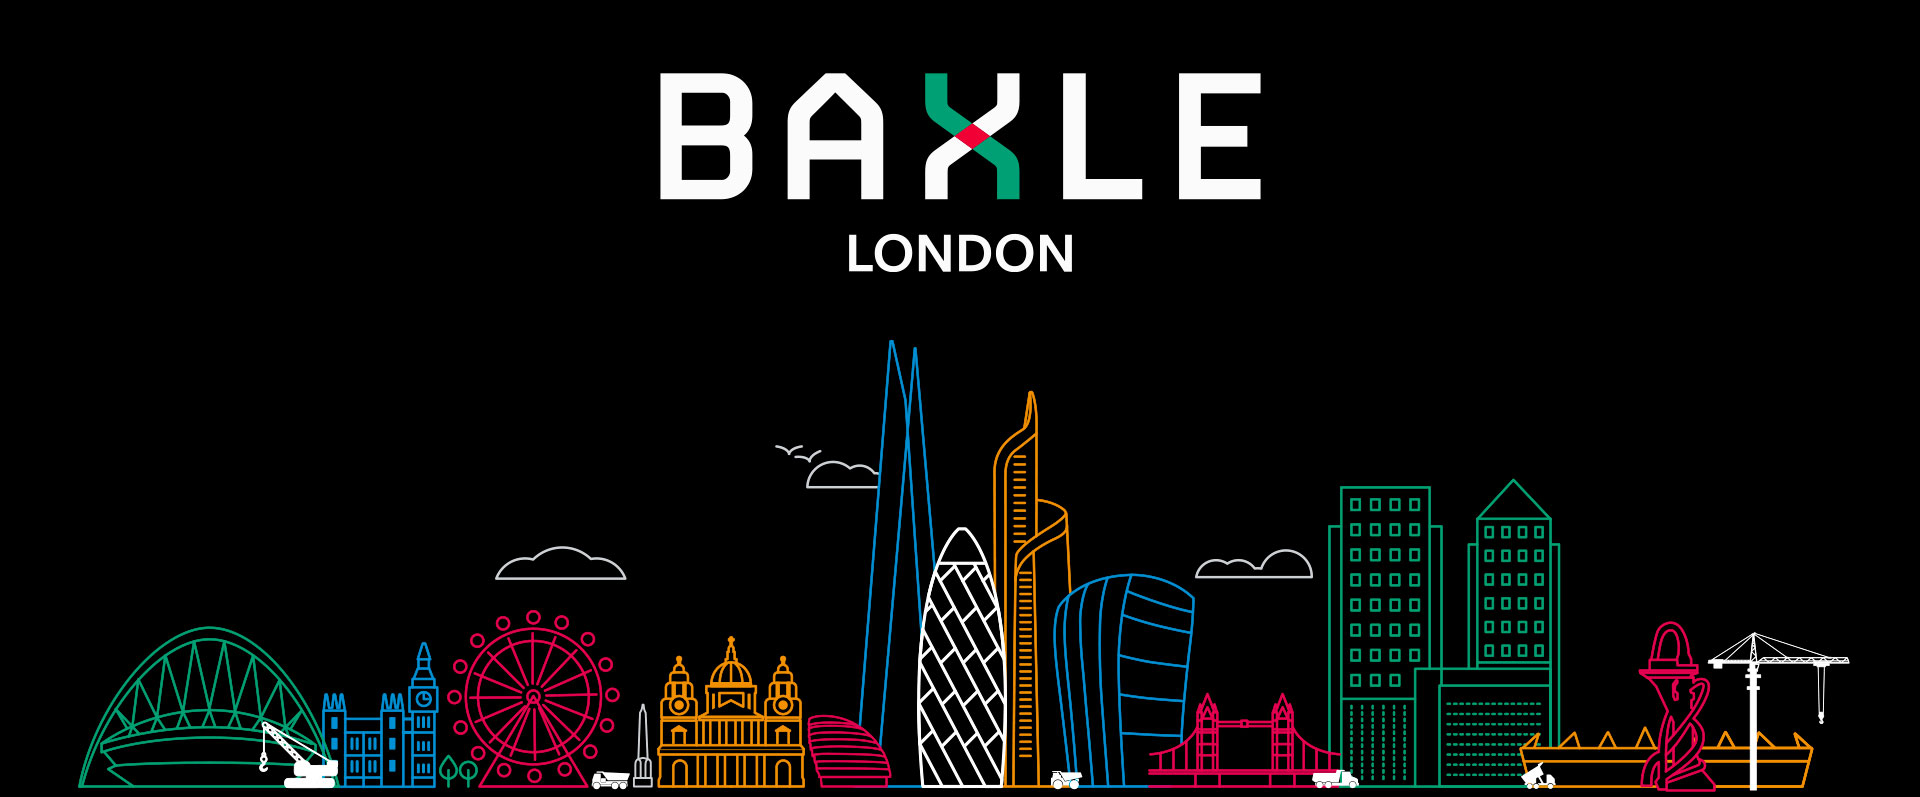 Baxle London branding for a heavy haulage company